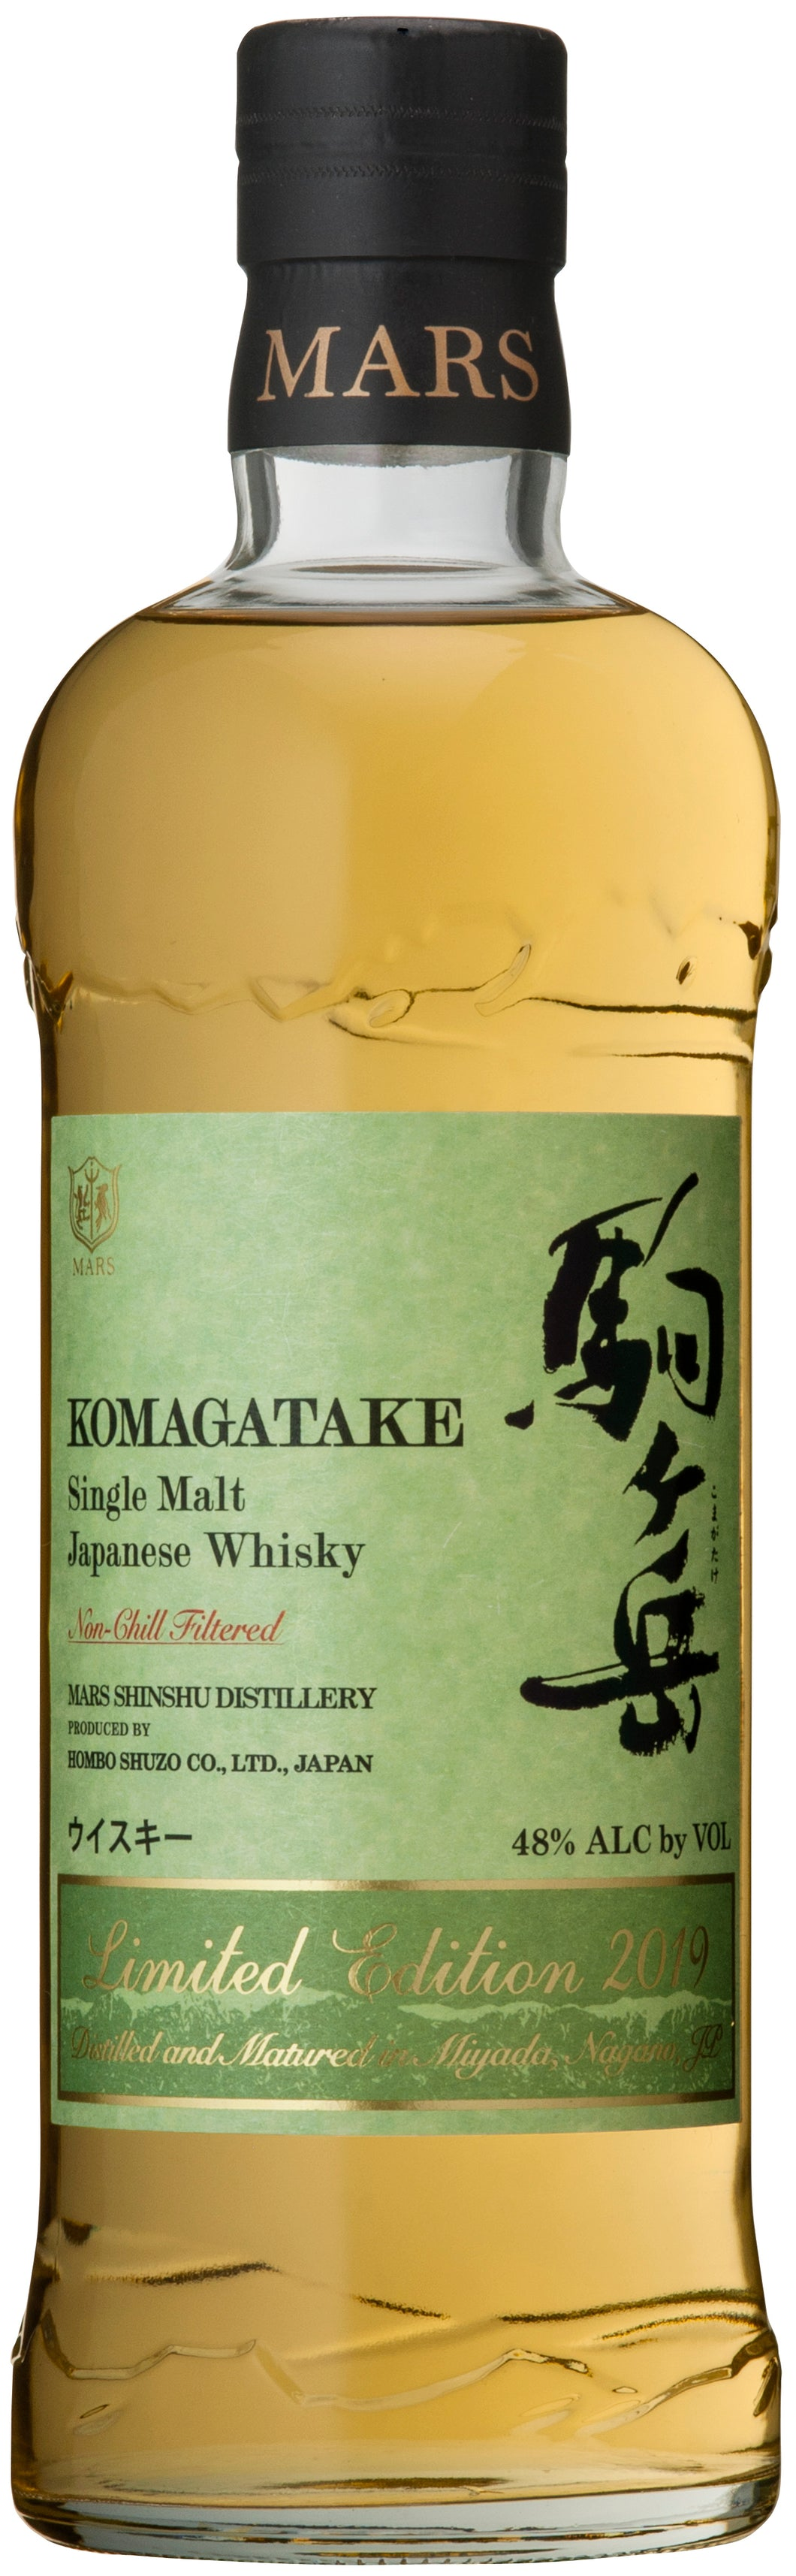 MARS KOMAGATAKE Single Malt Limited Edition 2019 750 ml